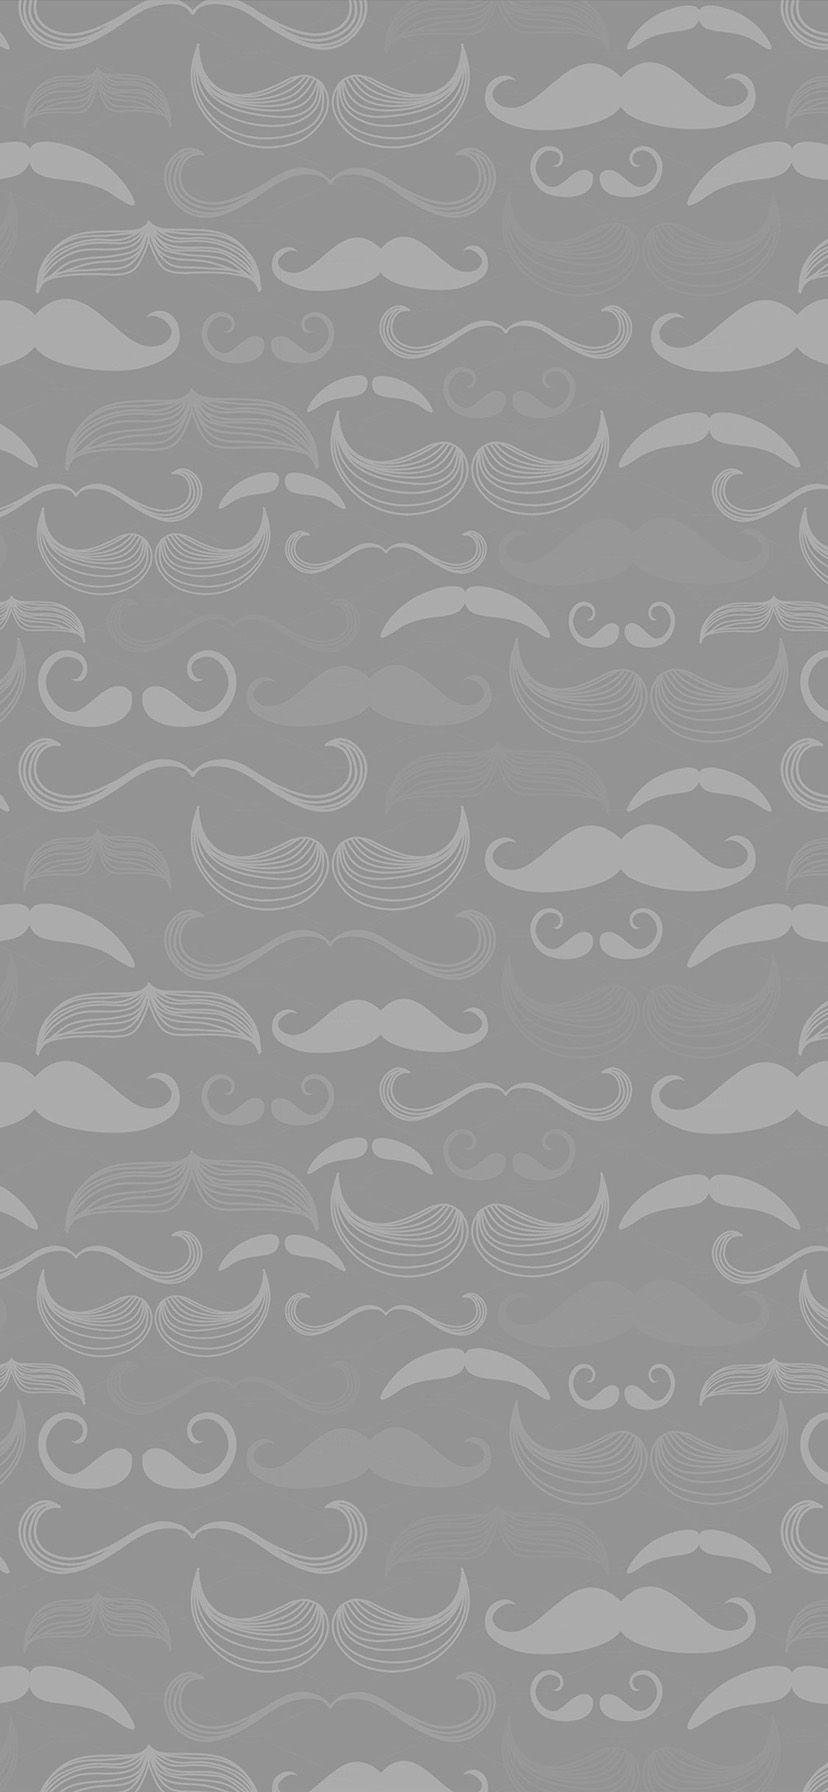 HD iPhone XR Wallpapers For ve73 hipster moustache cute light hazy